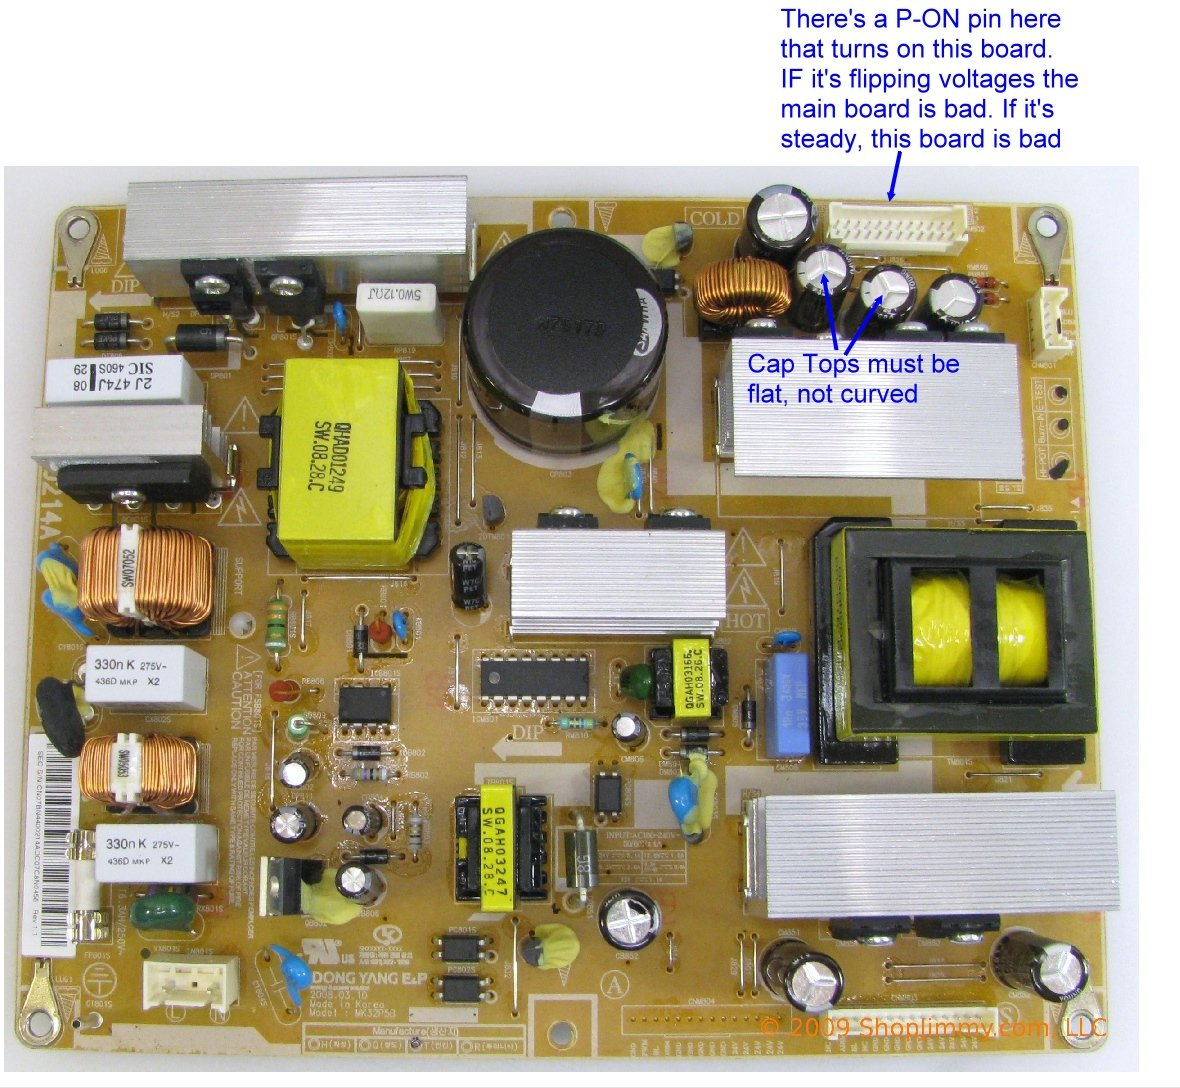 My Question Is About A Samsung Ln32a450c1d. It's Been